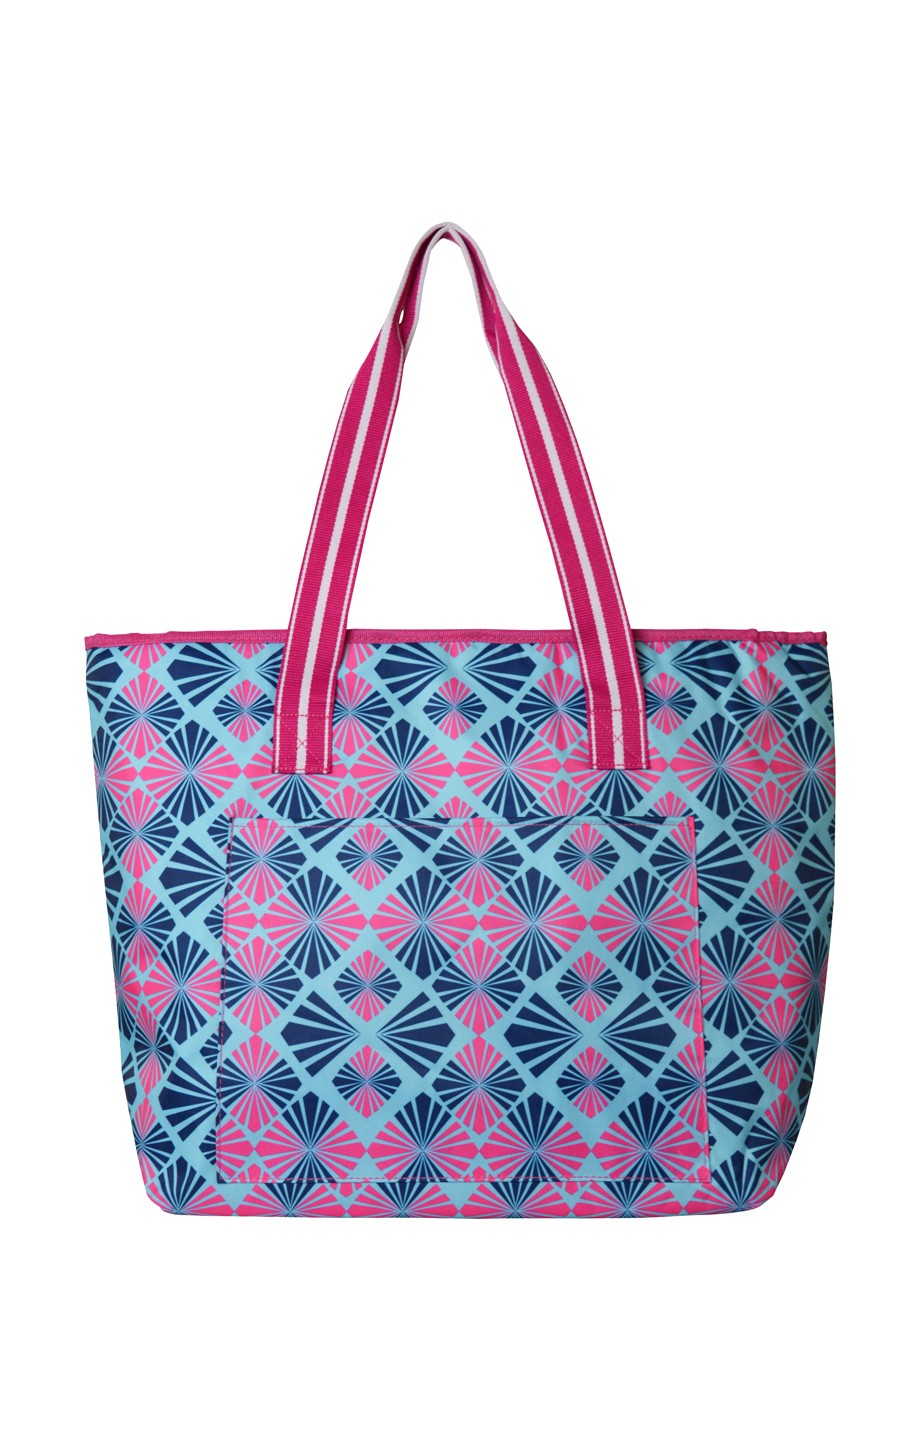 All For Color-Summer Rays Cooler Tote - FINAL SALE-Cooler Bag